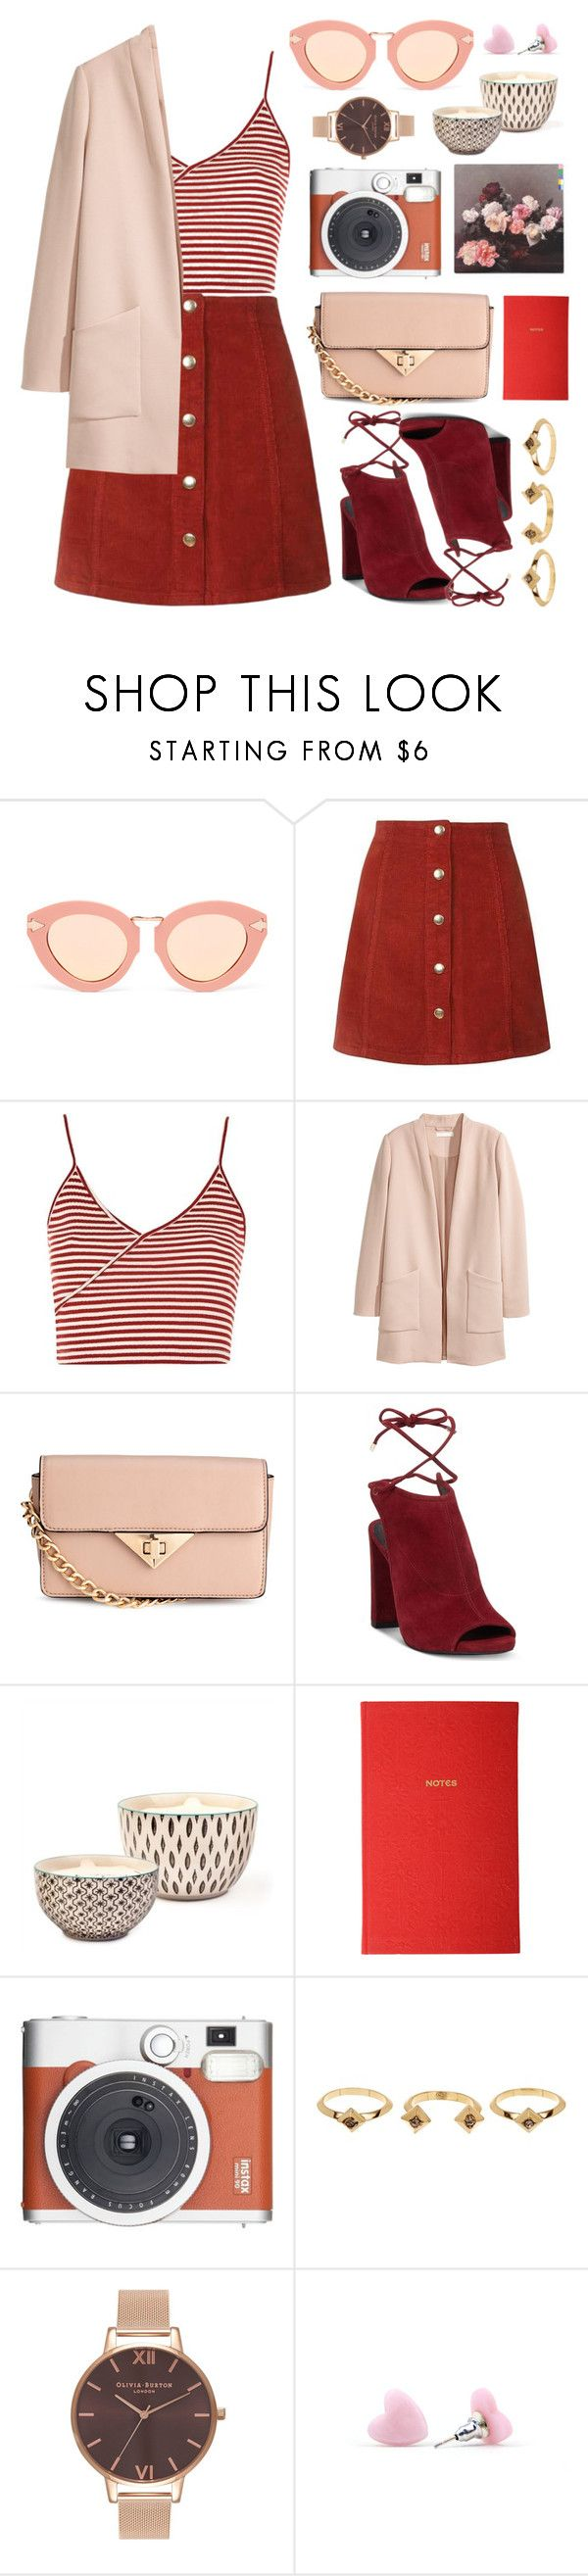 """""""retro sunglasses"""" by enamorado-dina ❤ liked on Polyvore featuring Karen Walker, Topshop, Kenneth Cole, Bambeco, Liberty, Fuji, House of Harlow 1960 and Olivia Burton"""